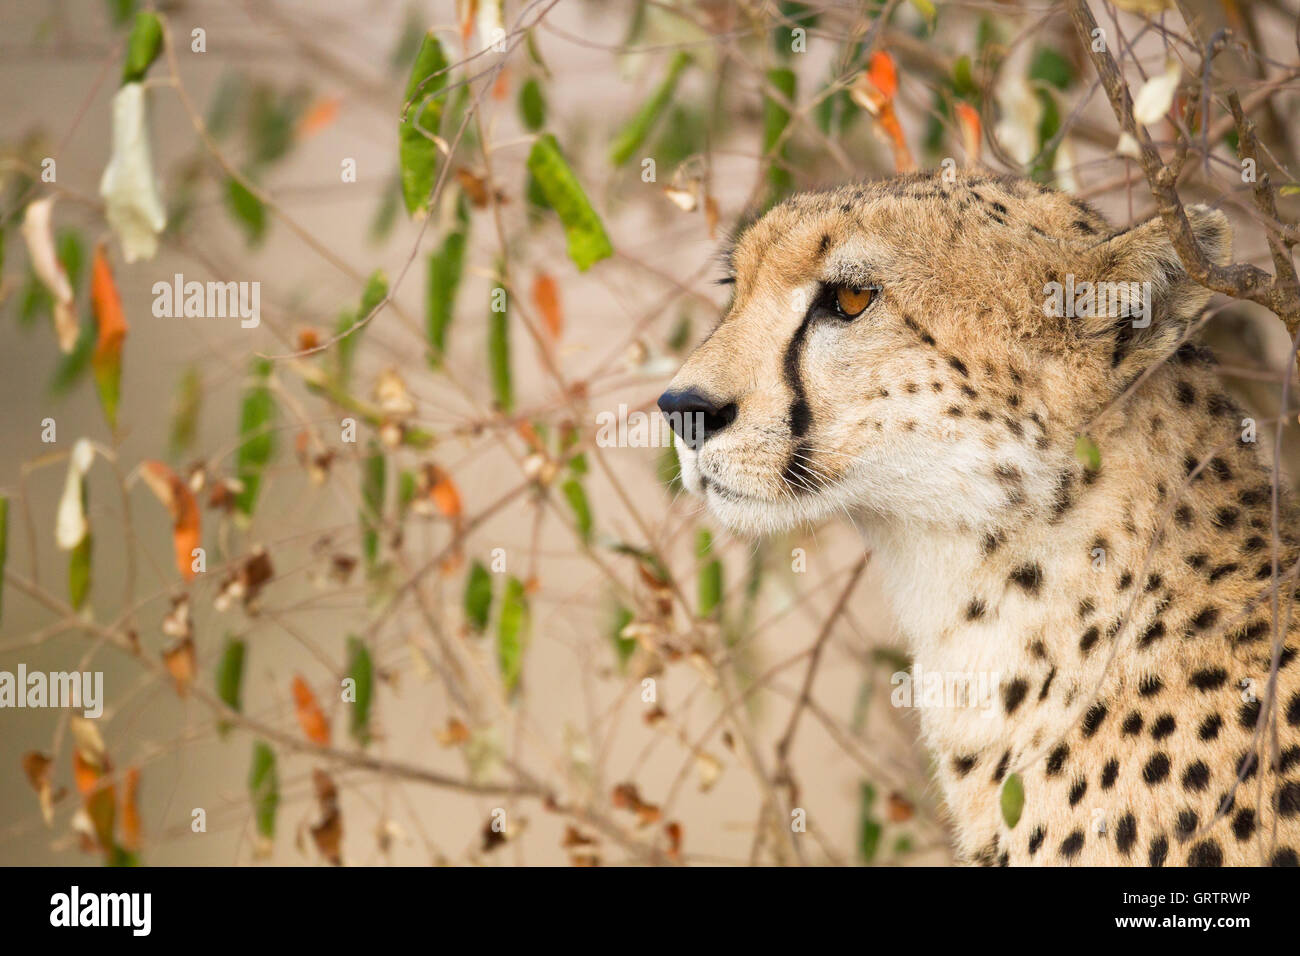 Cheetah looking left - Stock Image